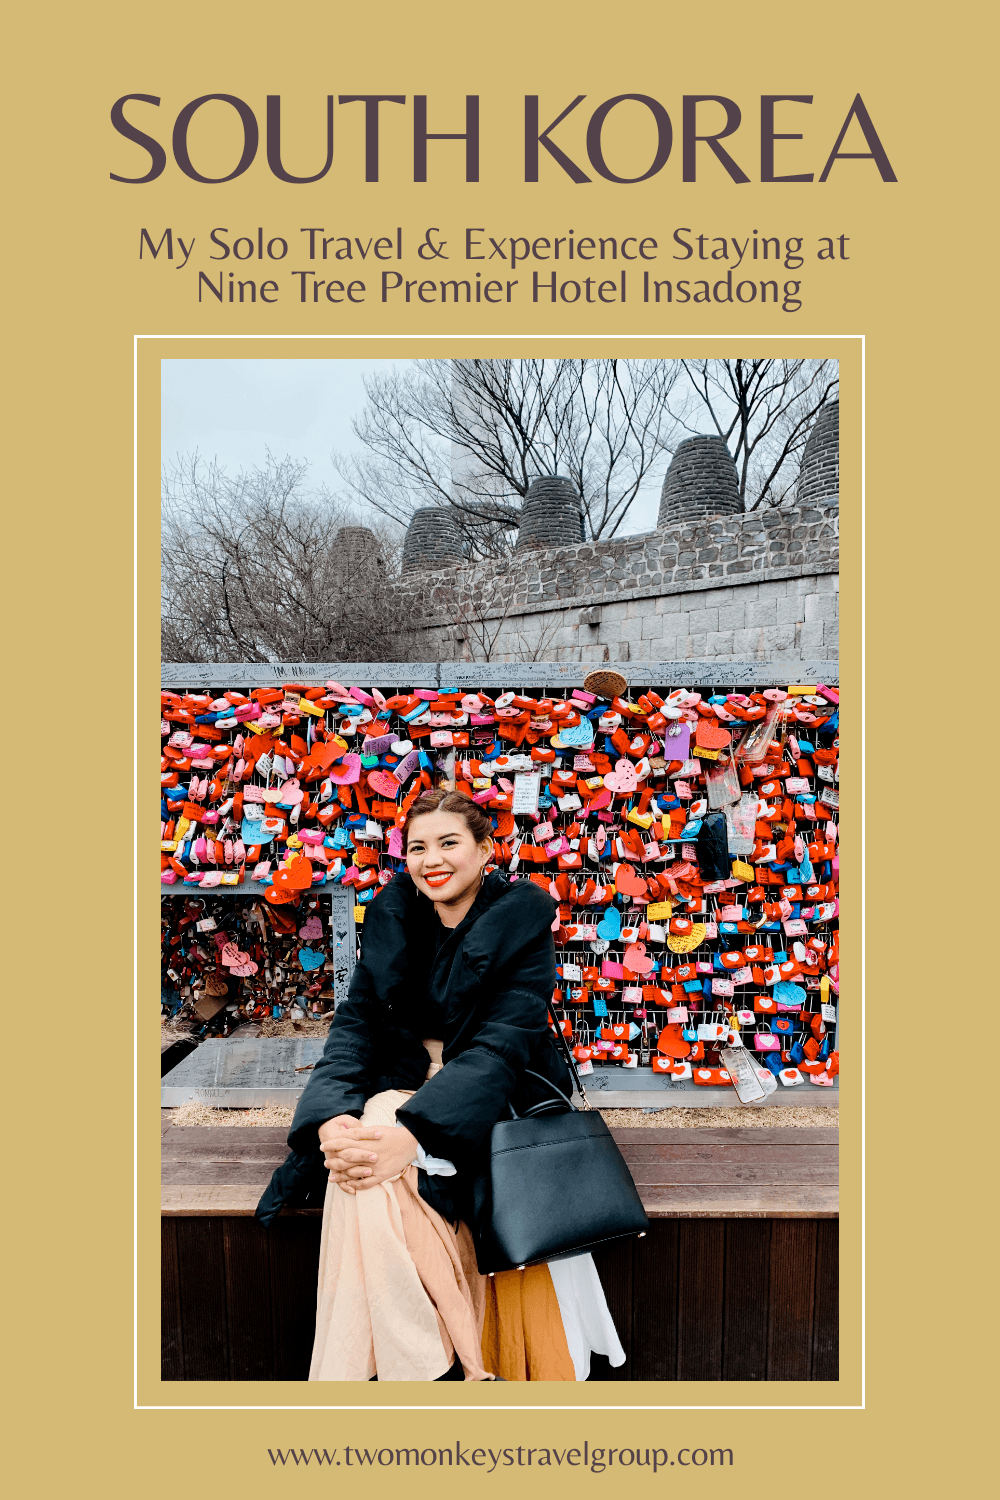 My Solo Travel and Experience Staying at Nine Tree Premier Hotel Insadong in Seoul, South Korea